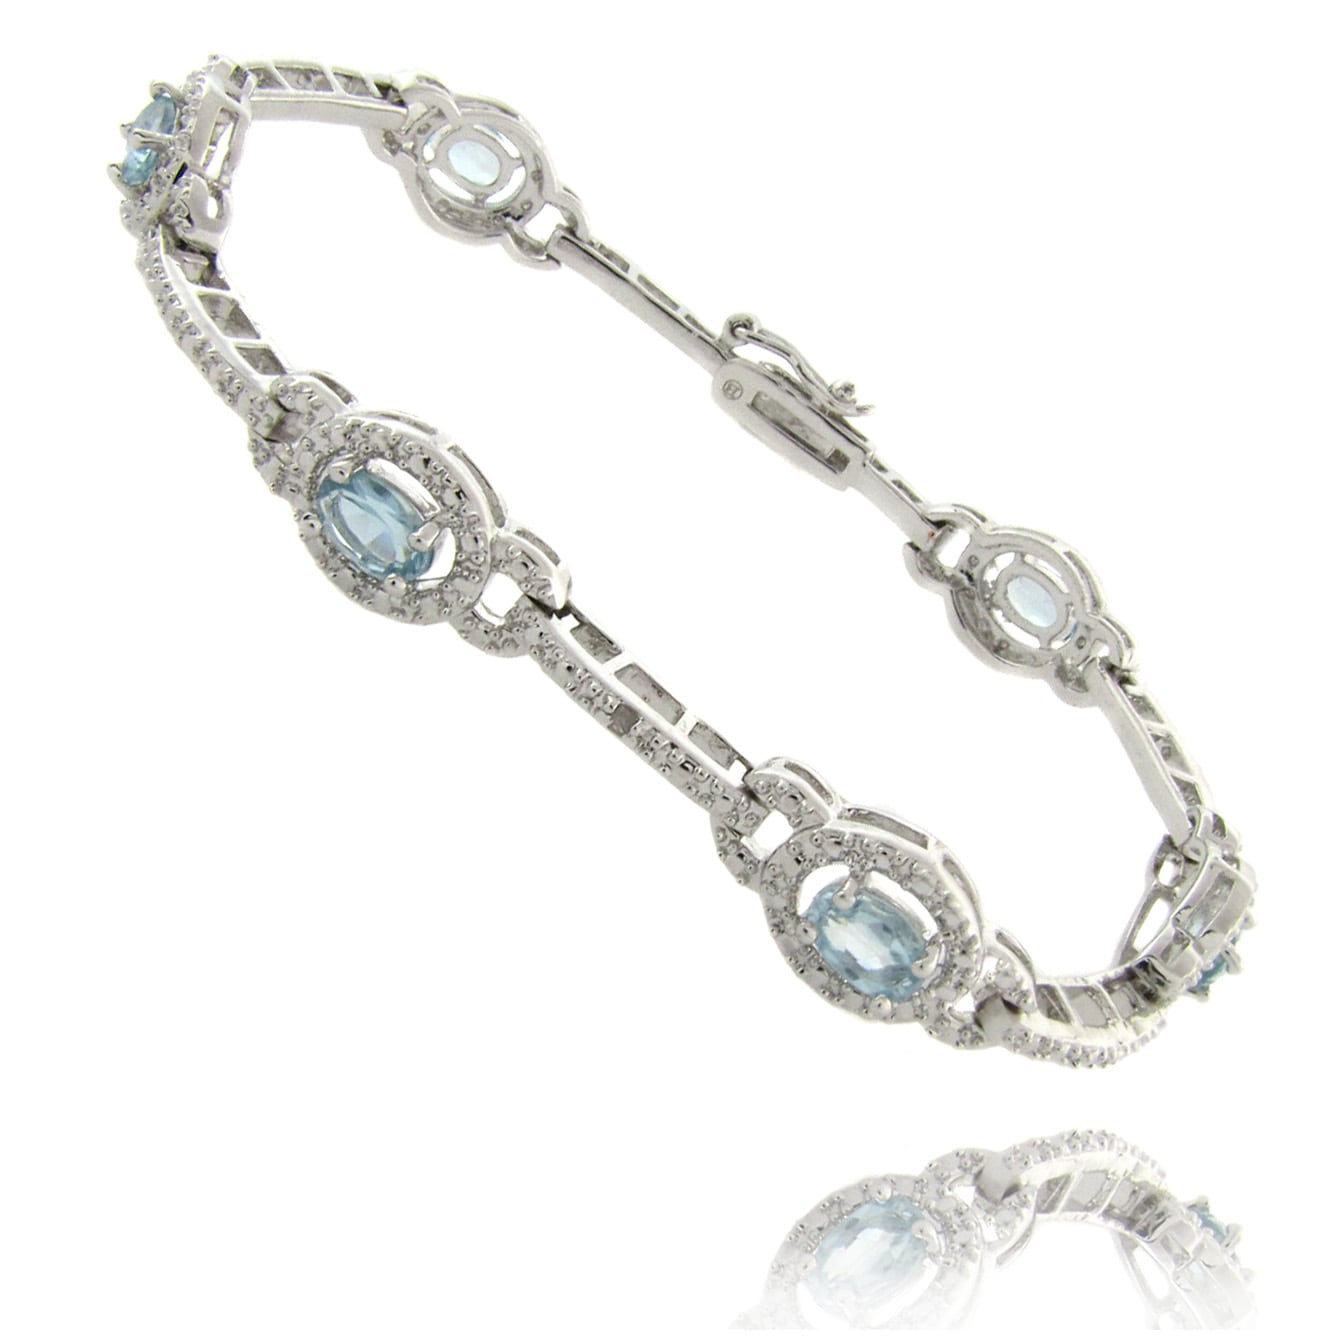 Dolce Giavonna Silverplated Blue Topaz and Diamond Accent Link Bracelet